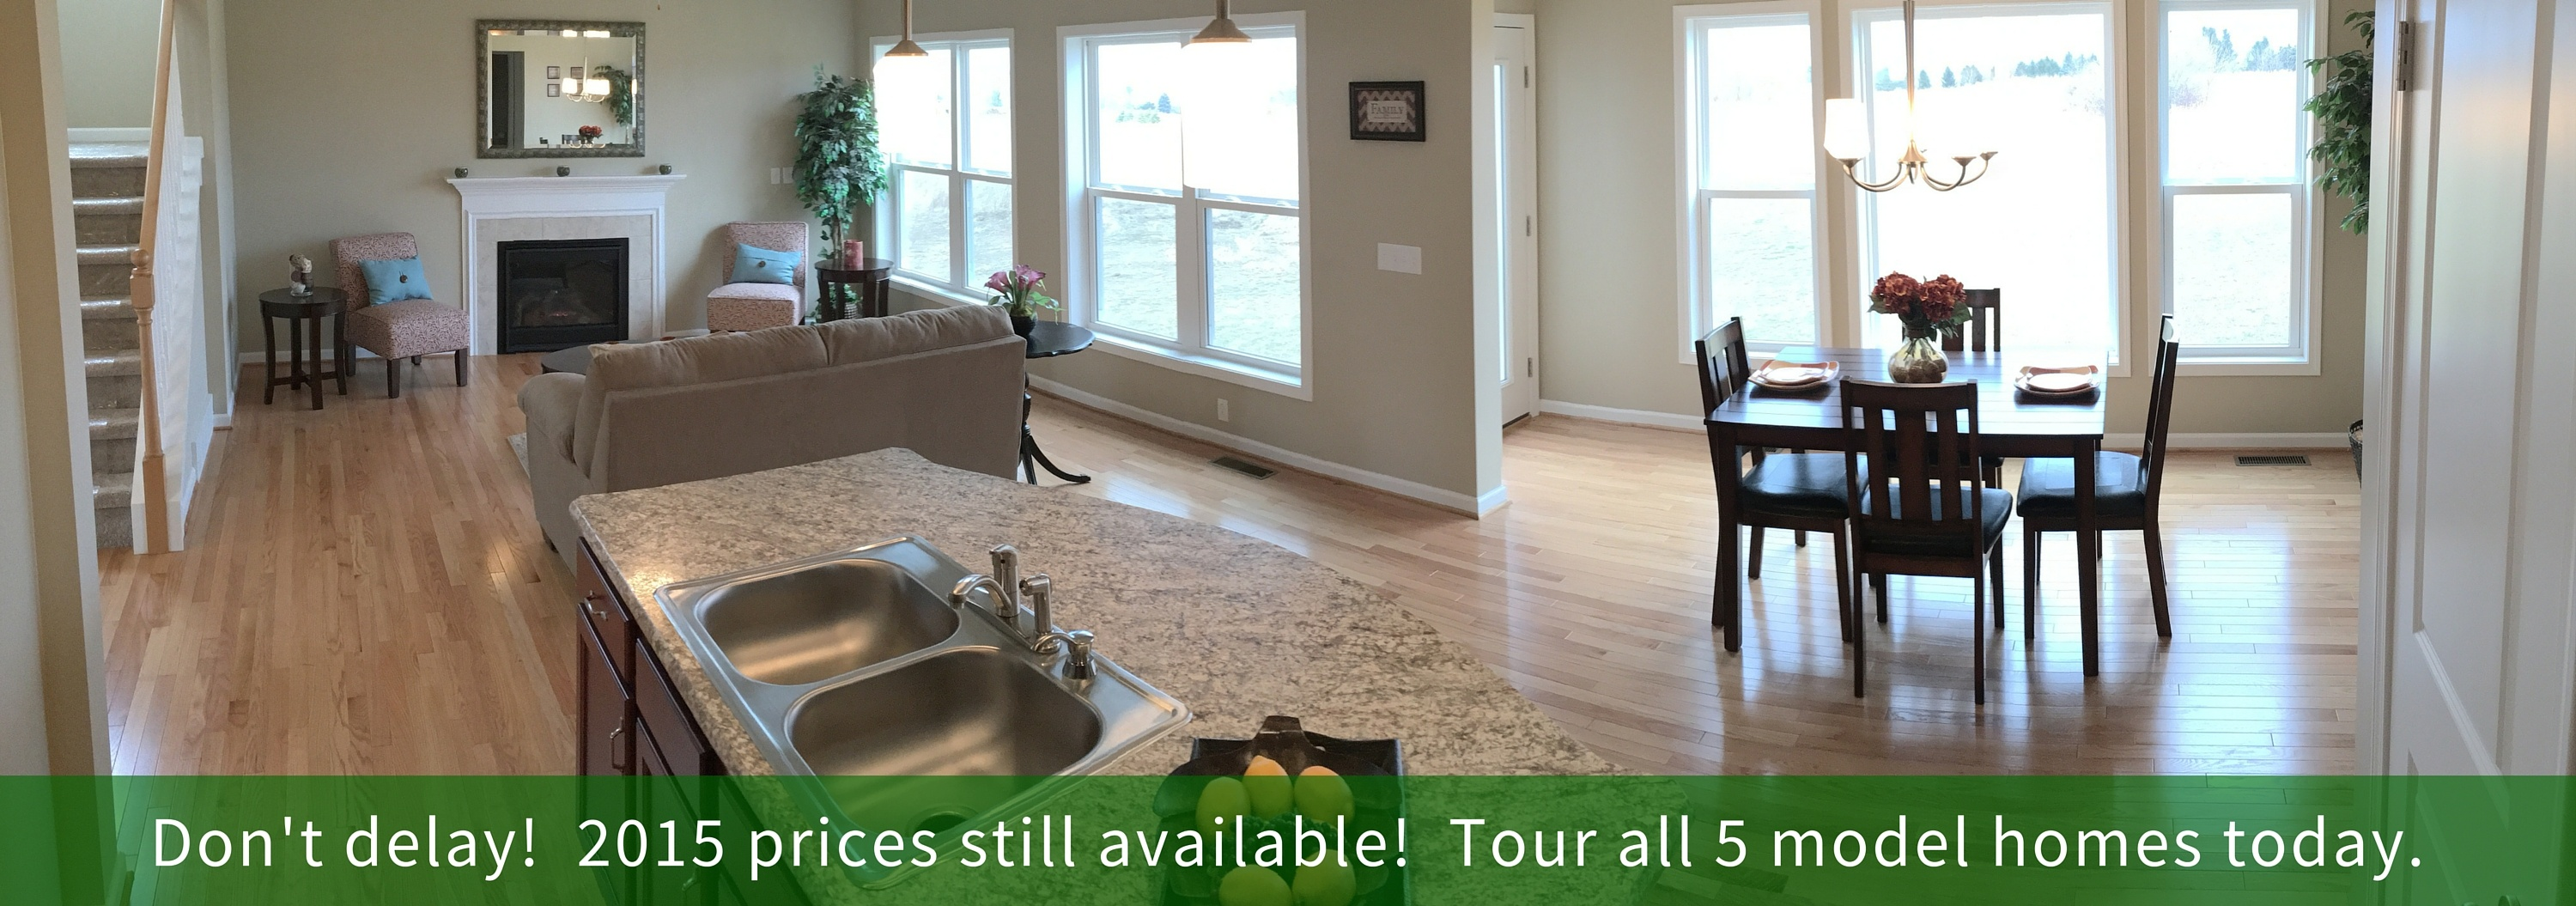 gerber-homes-affordable-prices-available.jpg